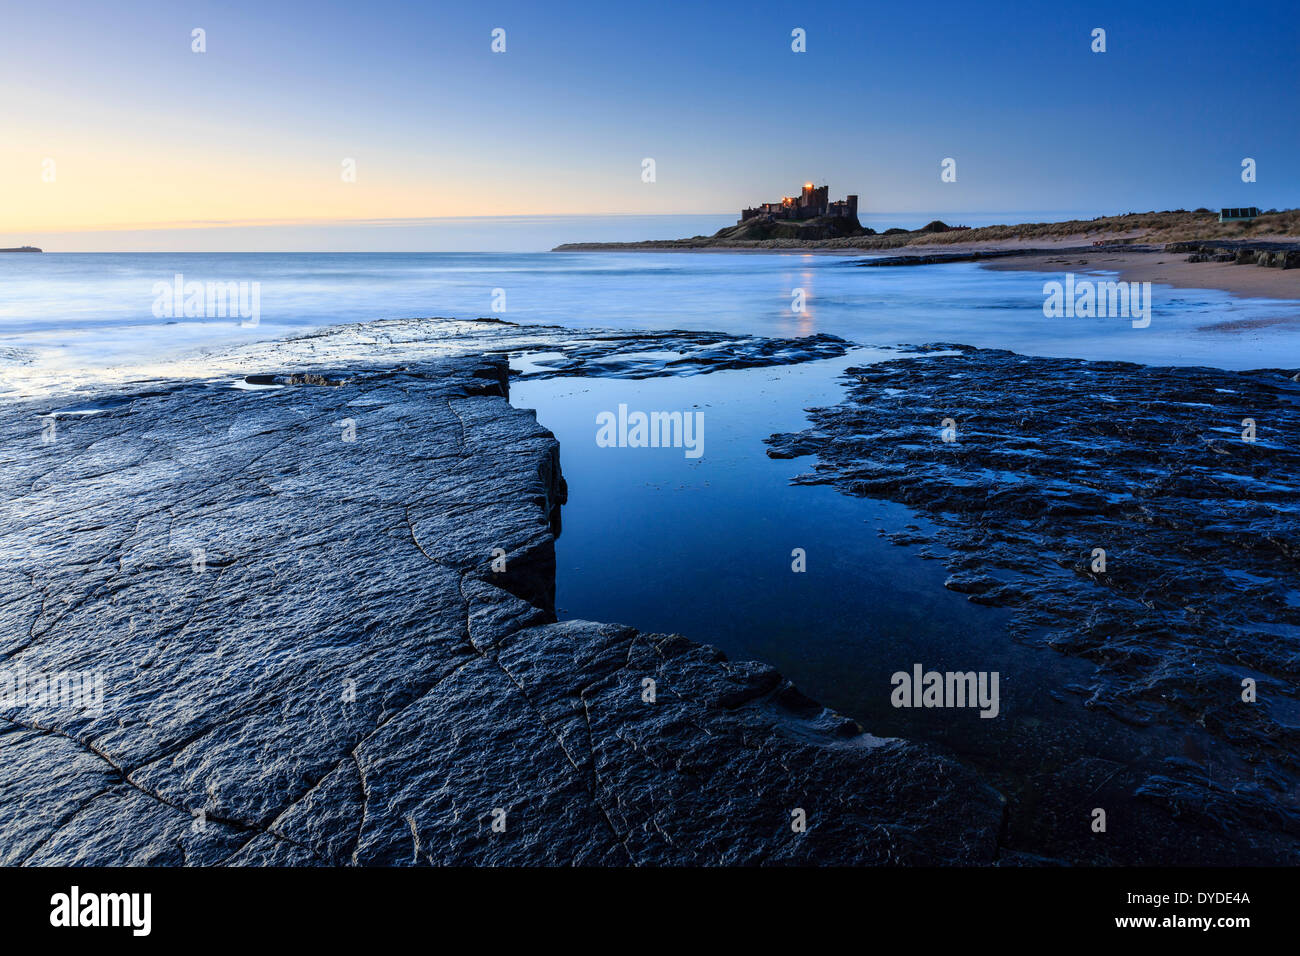 Looking towards Bamburgh Castle at dawn. - Stock Image